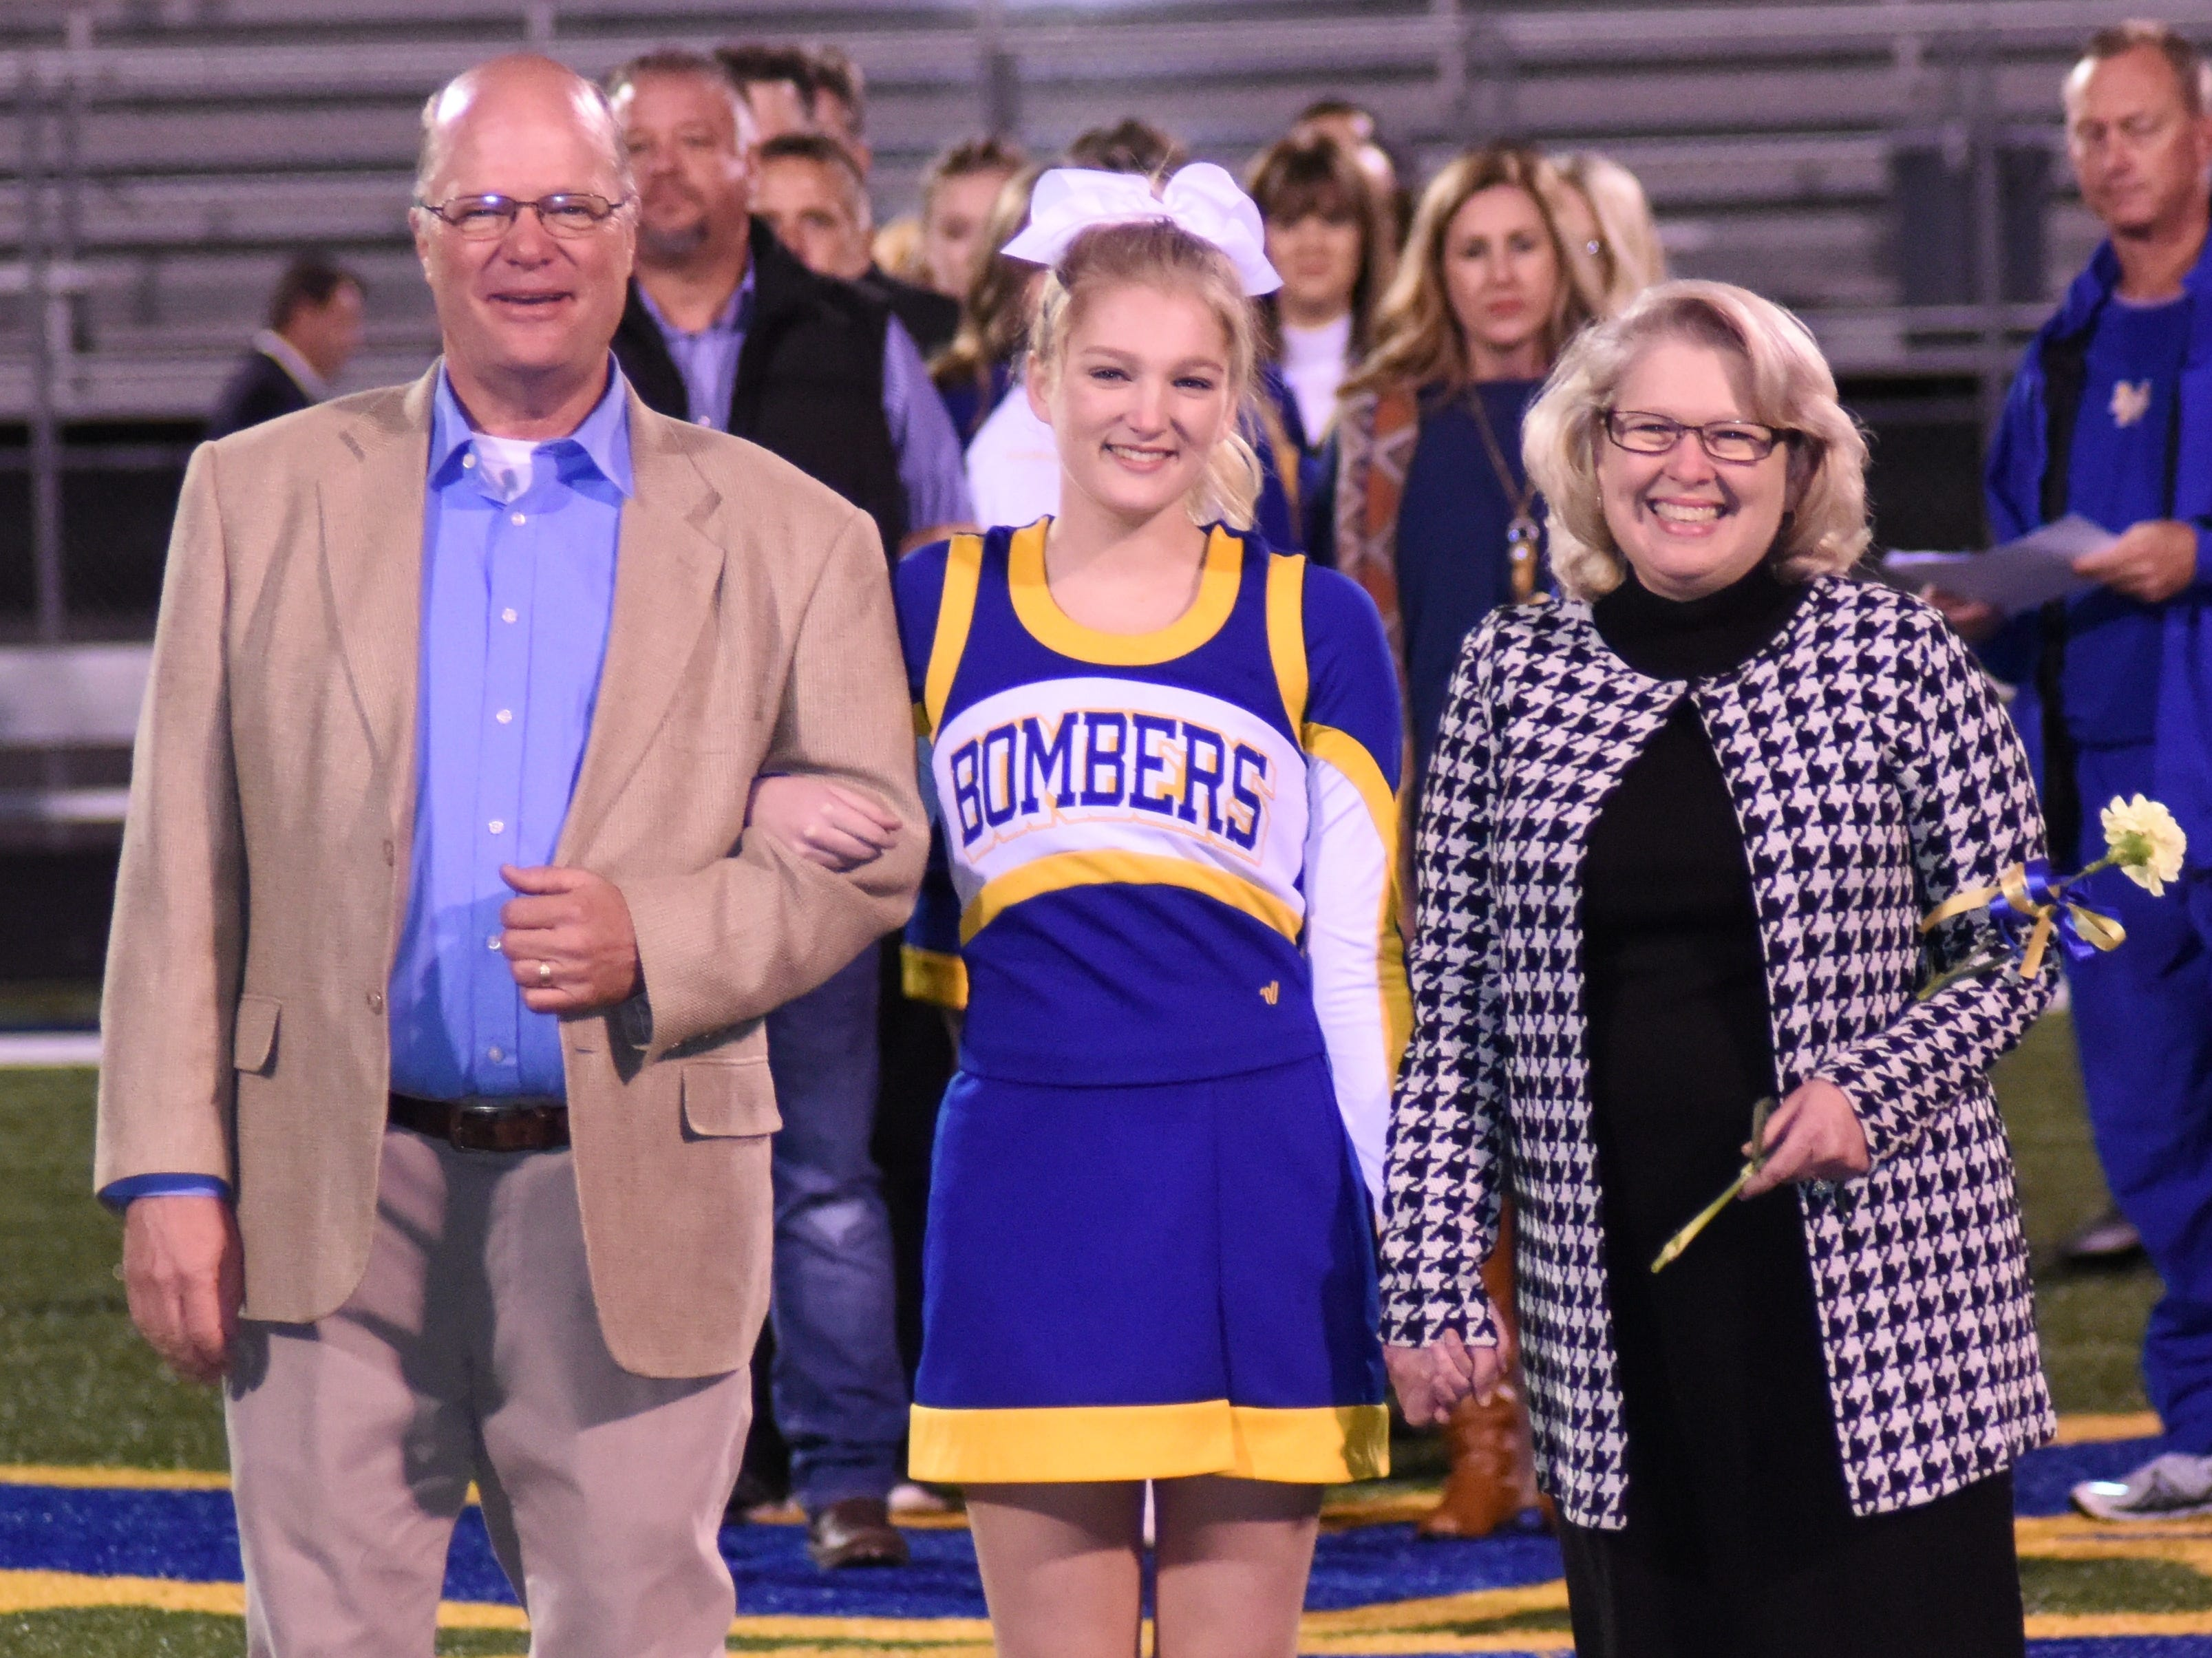 Maddy Goeke and her parents, Joe and Tammy Goeke.